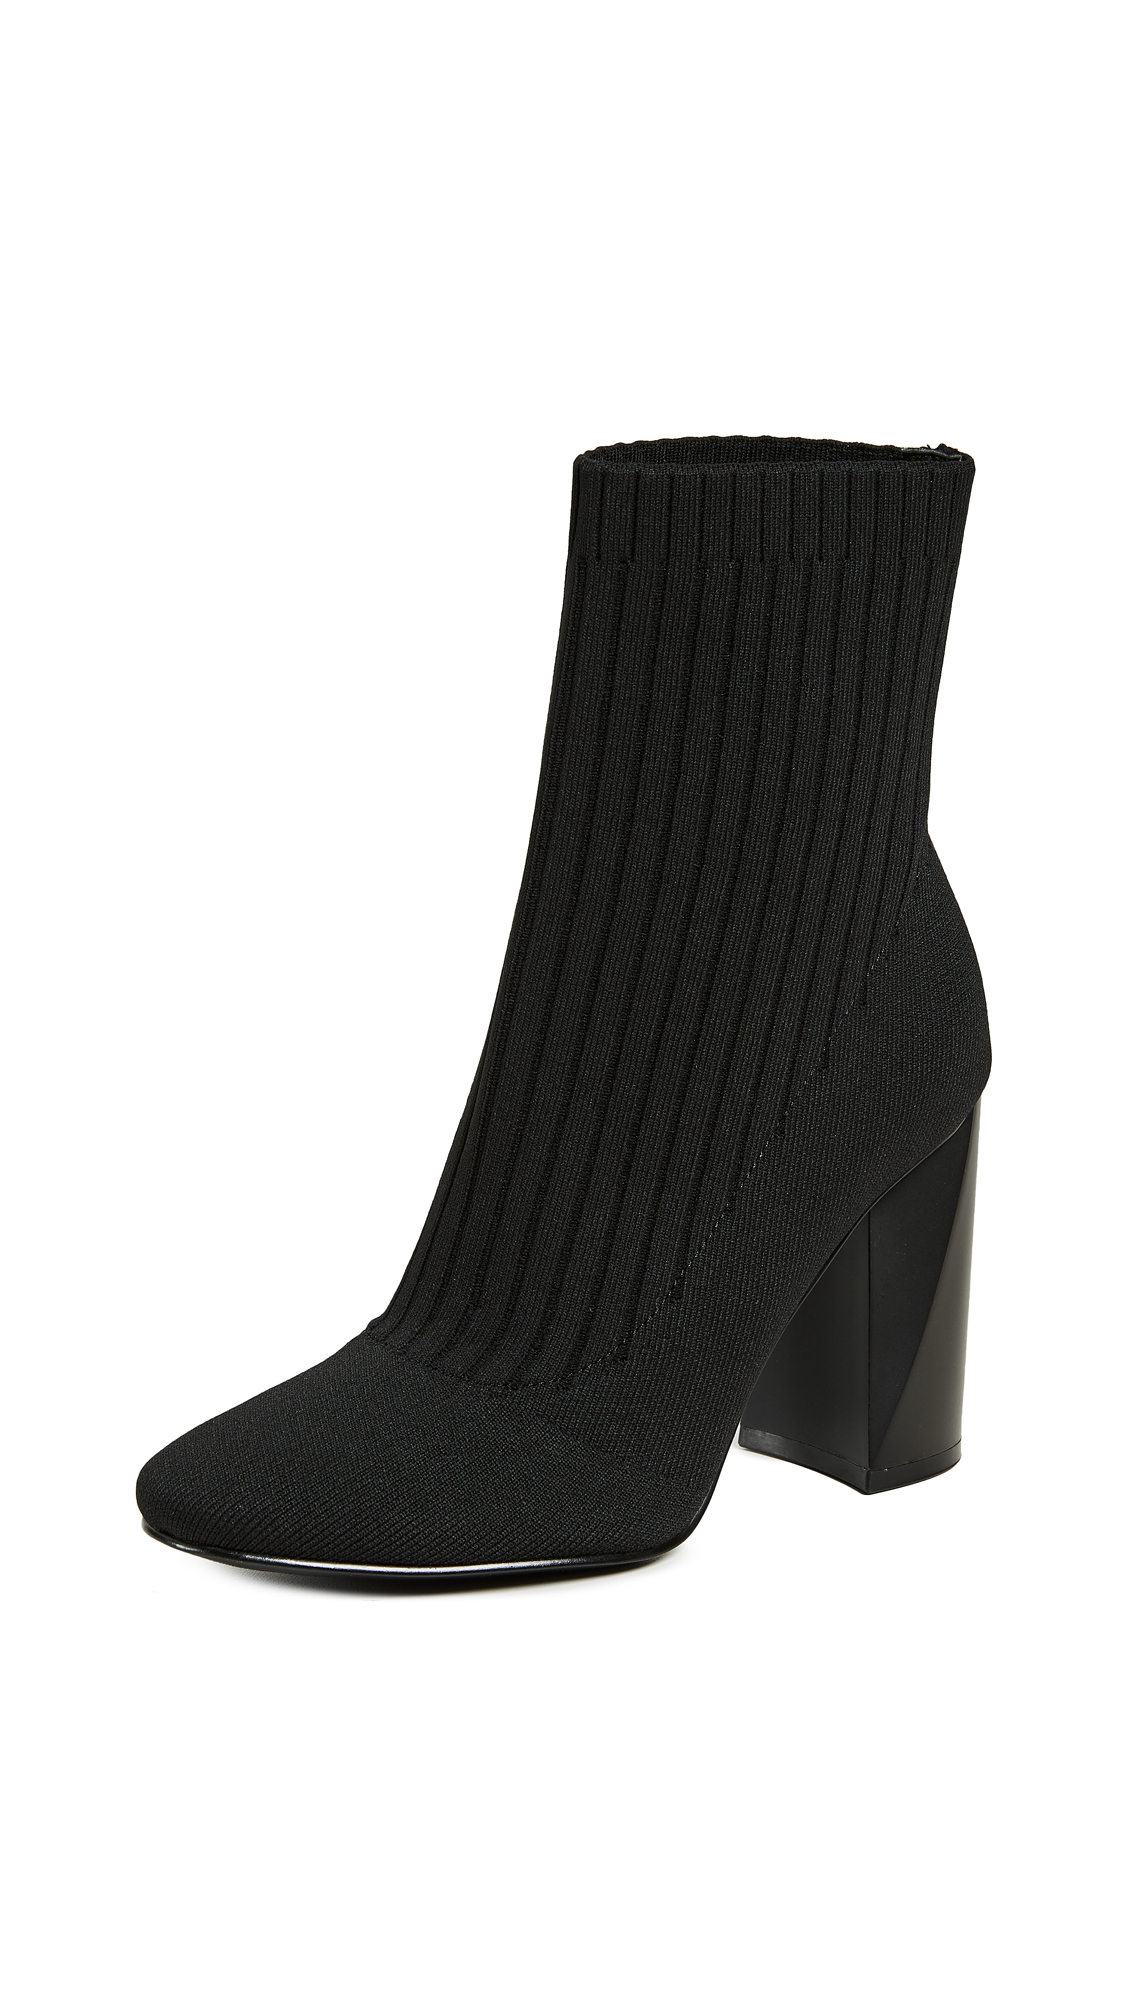 KENDALL + KYLIE Tina Knit Ankle Boots in Black